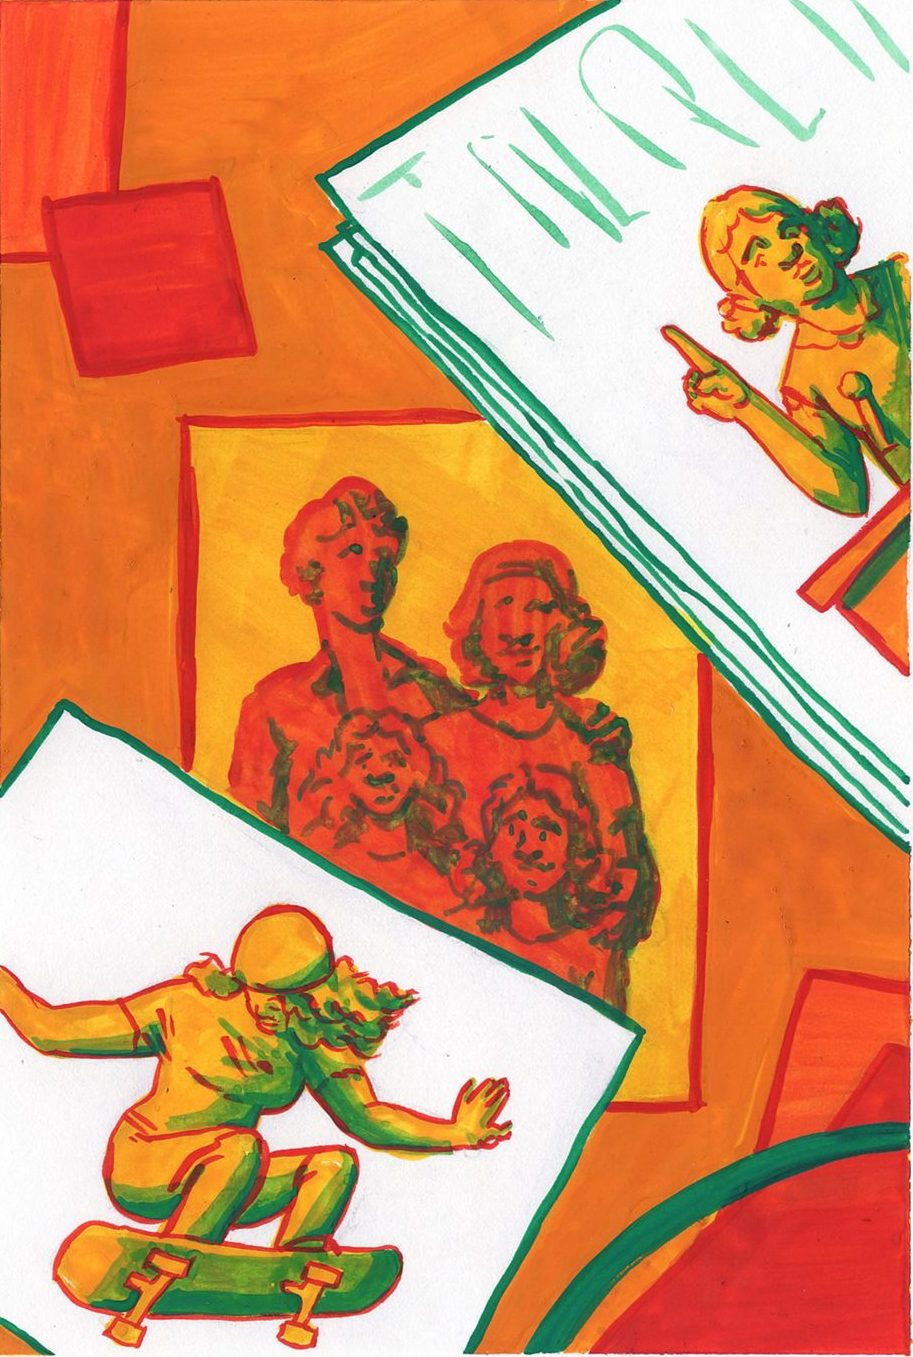 Gouache spot illustration of a family. The two siblings are depicted doing things contradicting assumptions about birth order.